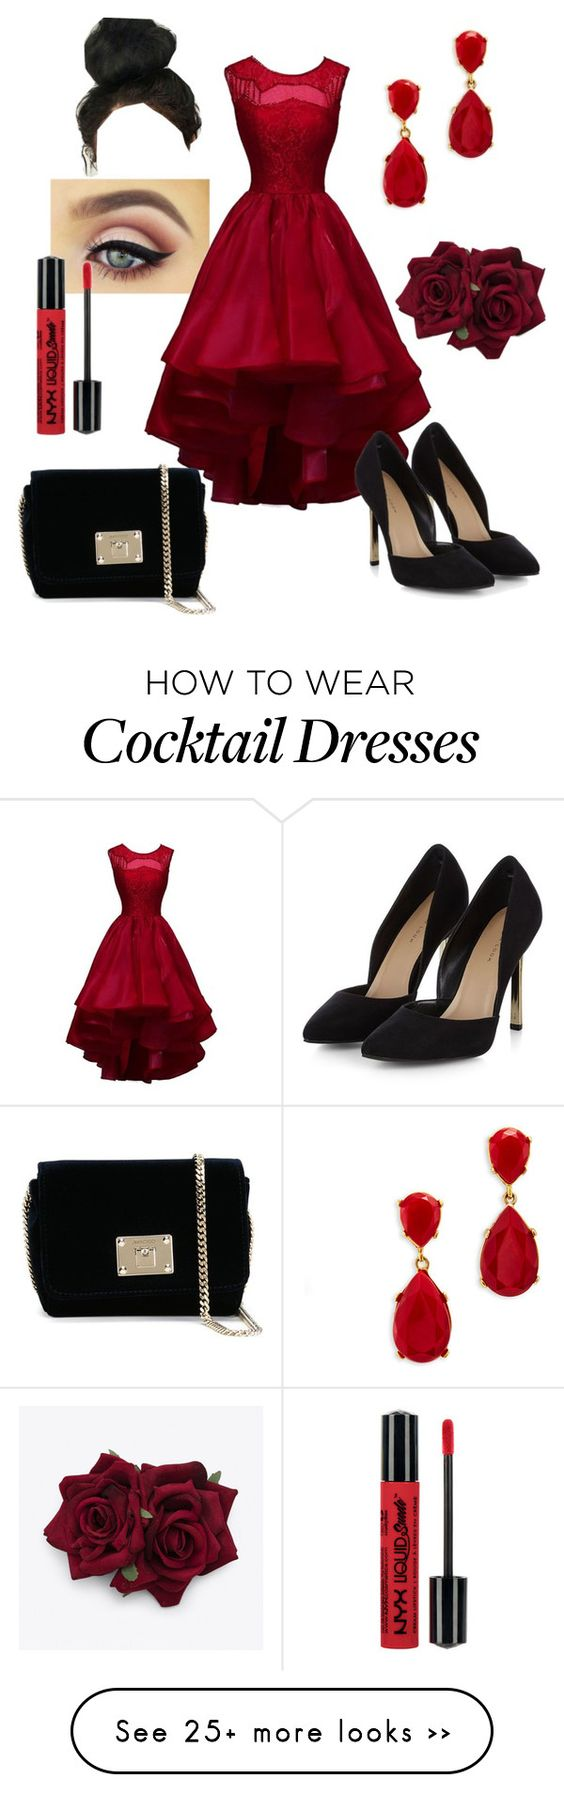 """Prom..."" by tweetfam on Polyvore featuring Kenneth Jay Lane and Jimmy Choo:"